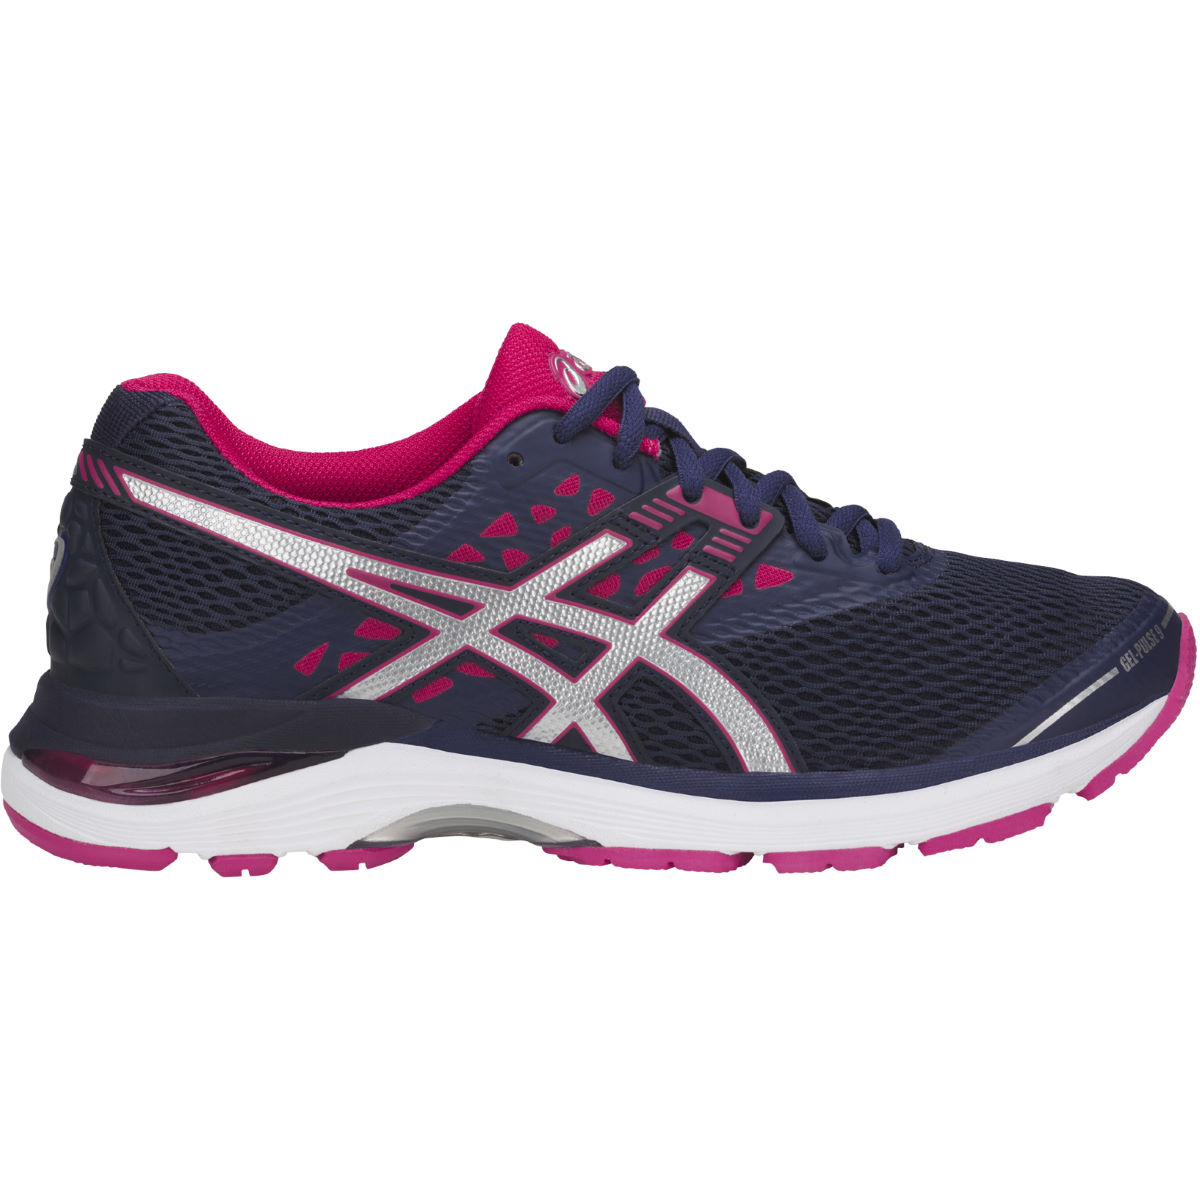 Chaussures Femme Asics Gel-Pulse 9 - UK 5 INDIGO BLUE/SILVER/B